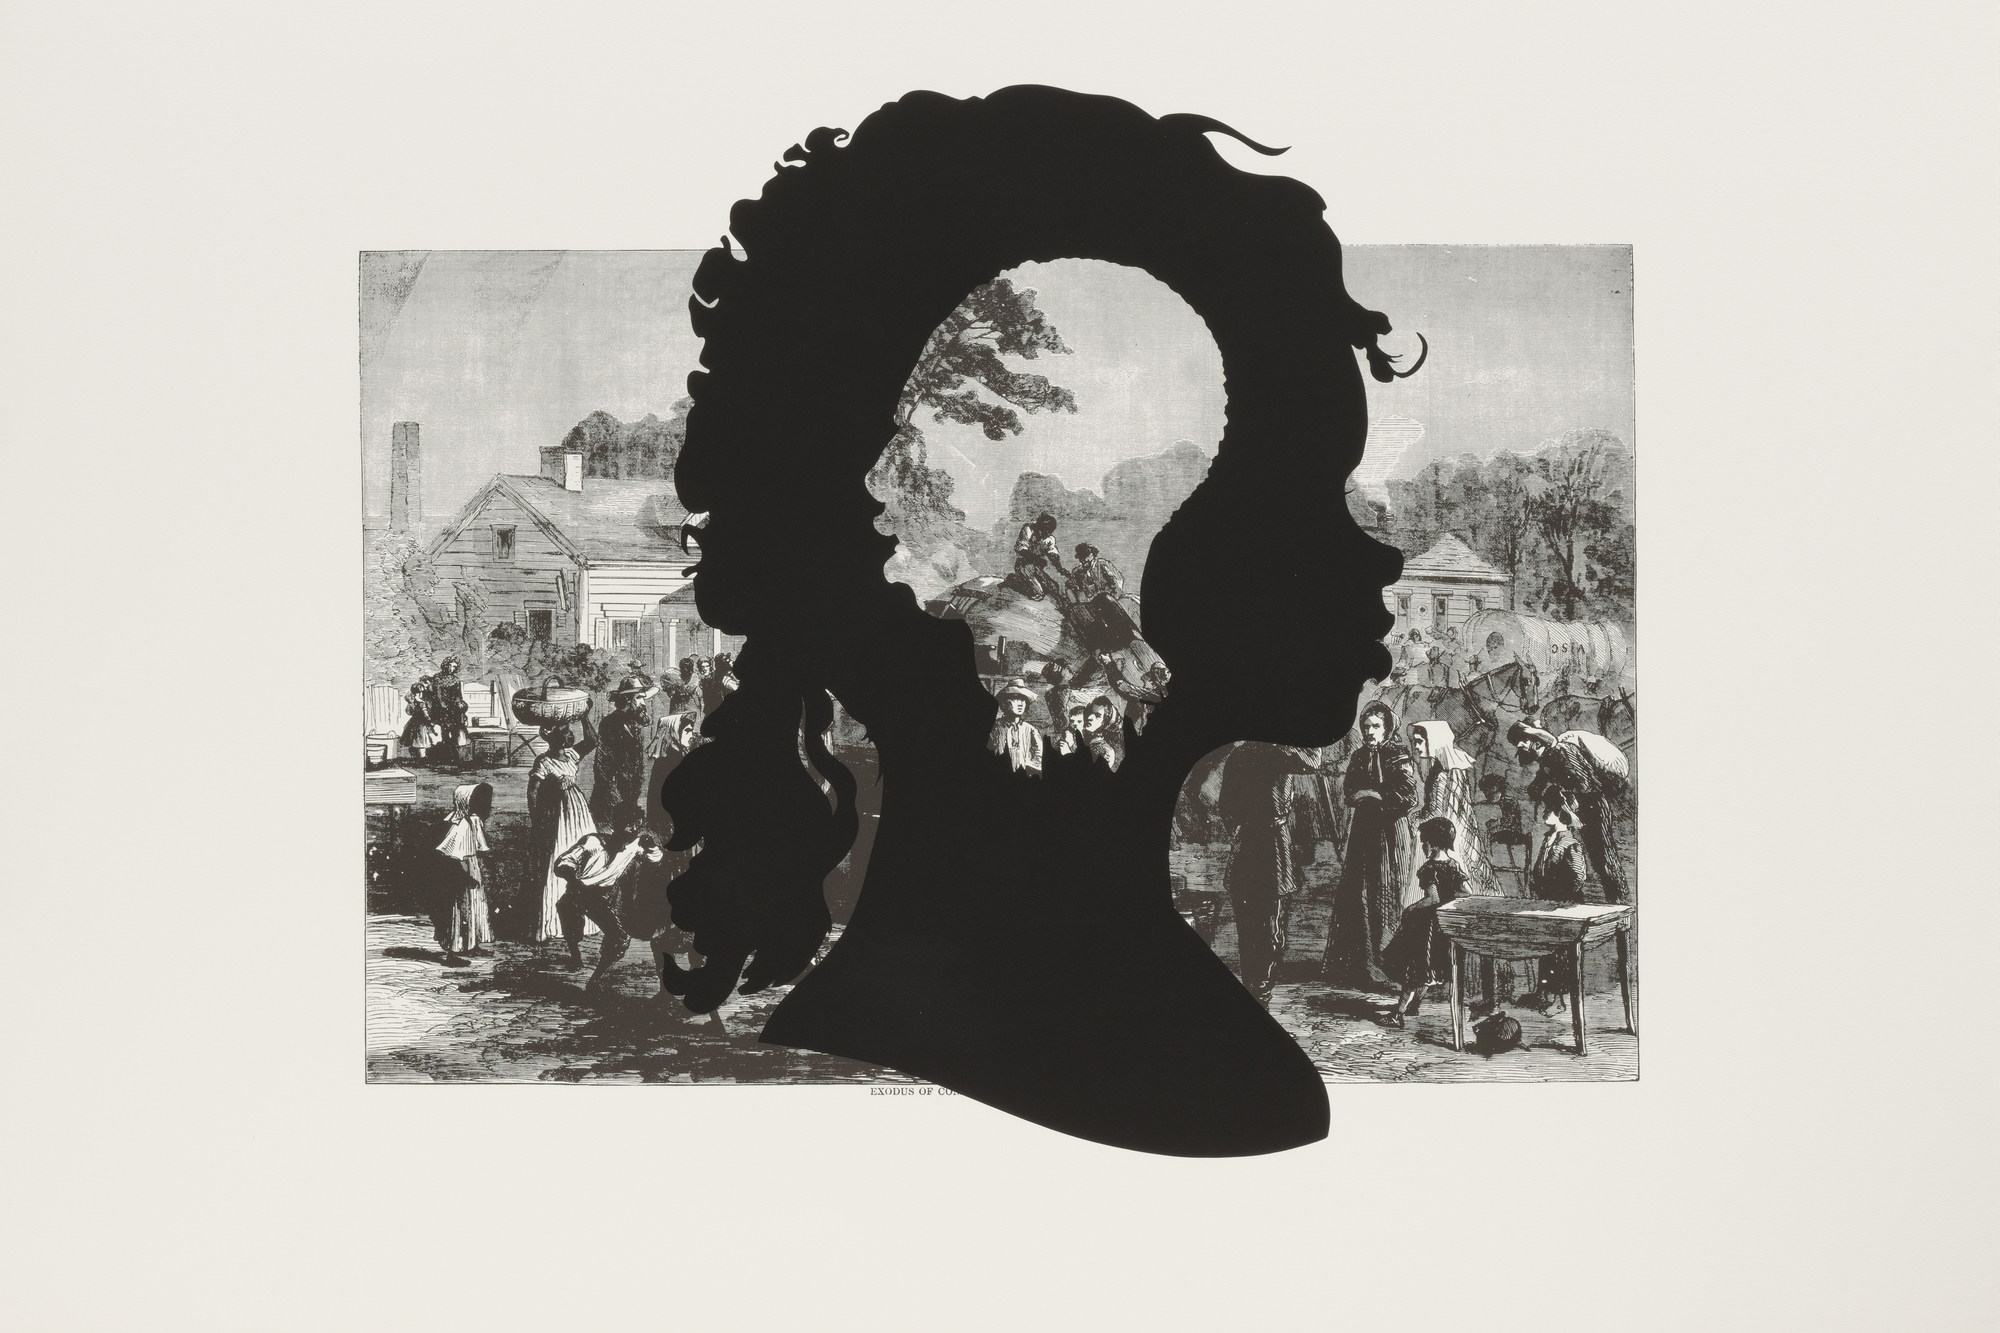 "Kara Walker. Exodus of Confederates from Atlanta, from the portfolio Harper's Pictorial History of the Civil War (Annotated). 2005. One from a portfolio of fifteen lithograph and screenprints, 39 1/16 x 52 15/16"" (99.2 x 134.4 cm). Publisher and printer: LeRoy Neiman Center for Print Studies, Columbia University, New York. Edition: 35. The Museum of Modern Art. General Print Fund and The Ralph E. Shikes Fund. © 2007 Kara Walker"